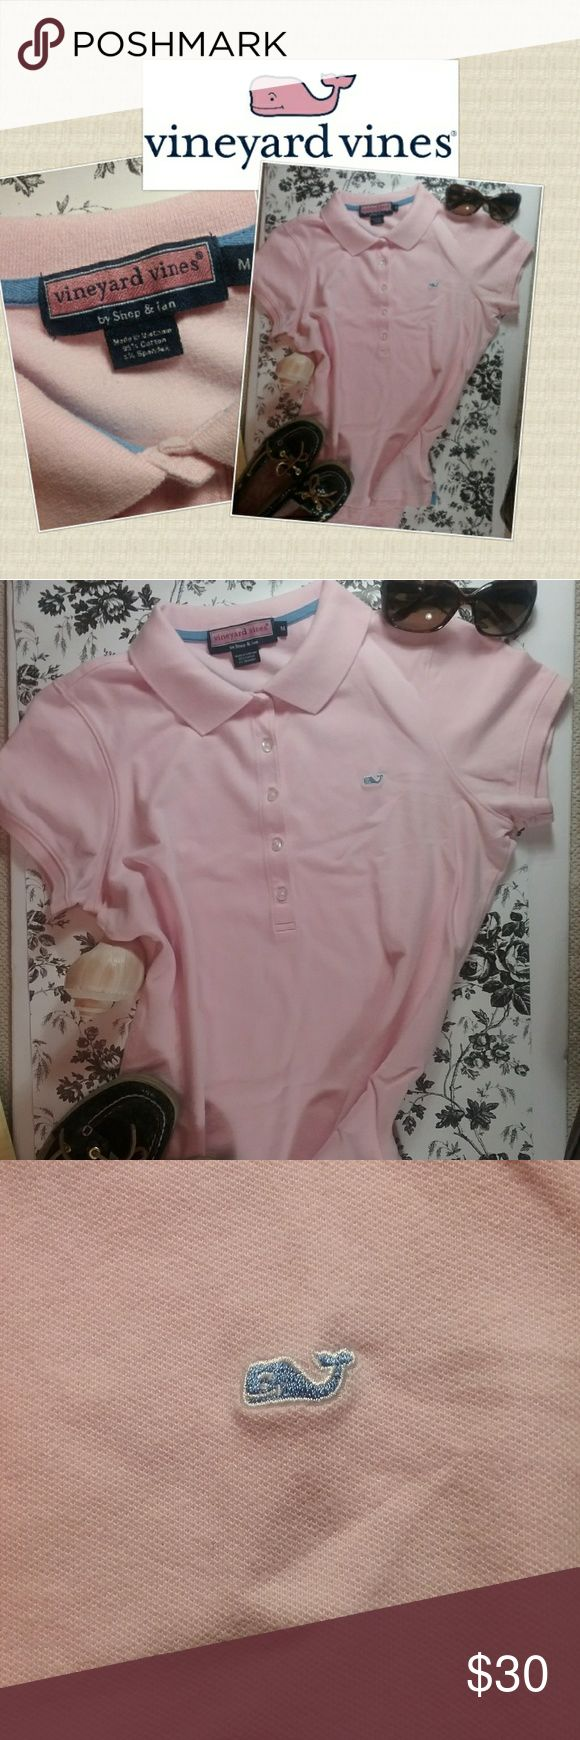 """Vineyard Vines Women's Pink Polo Beautiful Vineyard Vines pink polo shirt. Embroidered Logo on front. Size is medium.  Measurements; Armpit to armpit: 17"""". Shoulder to bottom of hem: 23"""".    Materials; 95% cotton,  5% Spandex   Excellent condition with no visible flaws of any kind.   Feel free to contact me with any additional questions about this item.   All reasonable offers will be considered. Vineyard Vines Tops"""